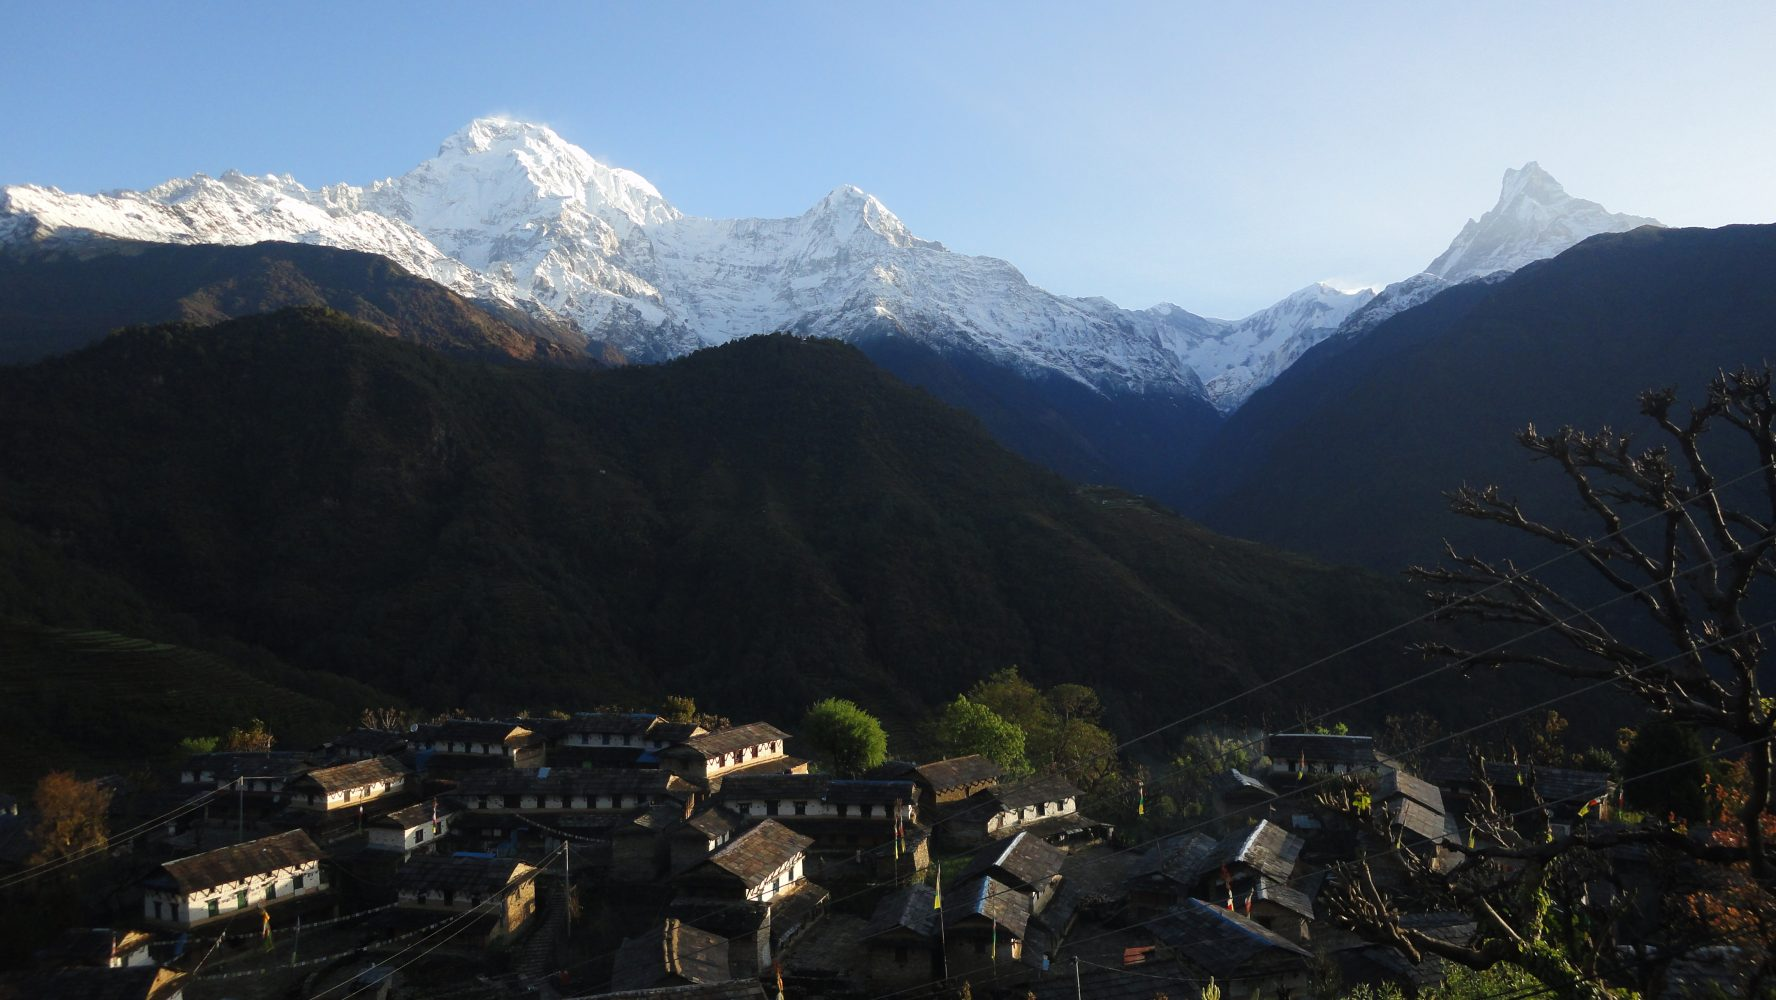 GHOREPANI POON HILL, GHANDRUK AND MULDAI TREK